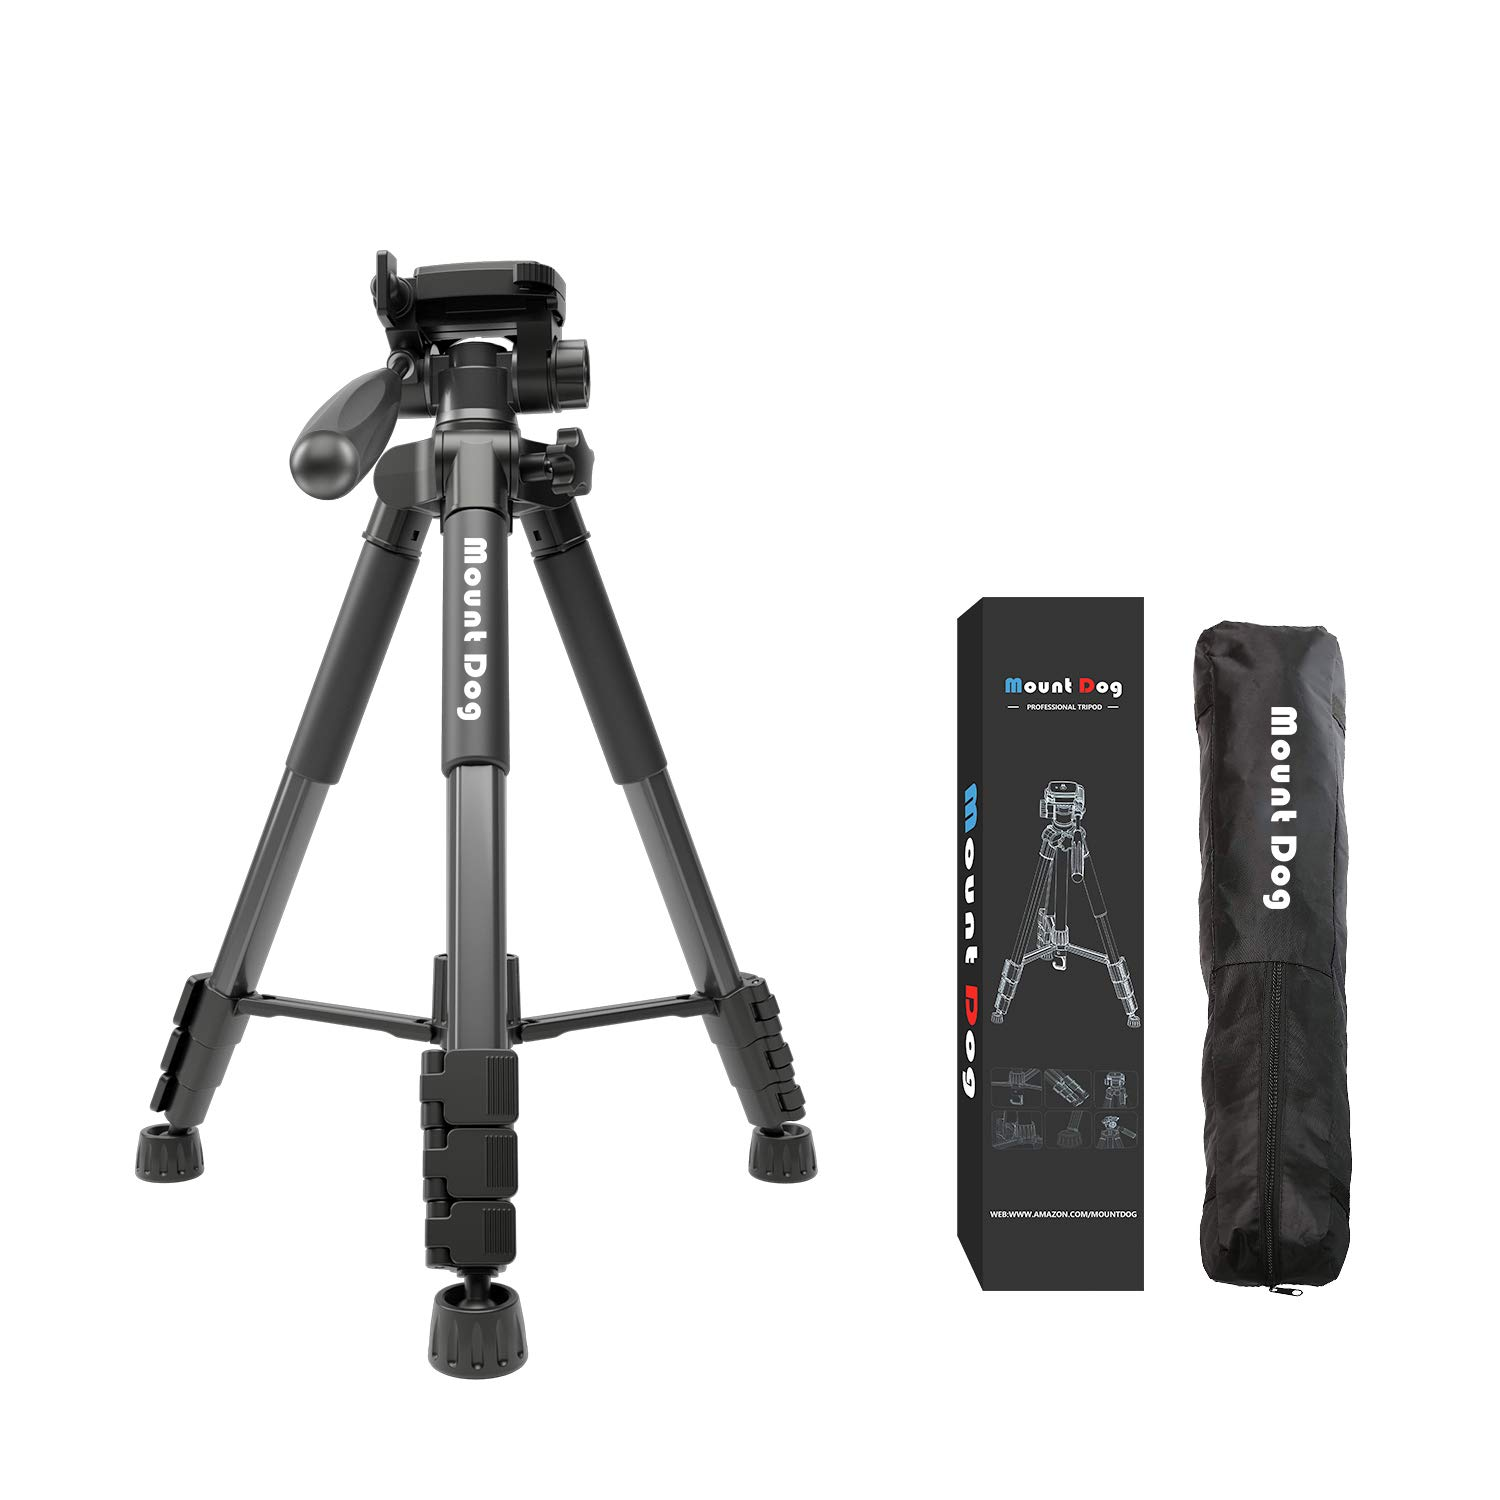 MountDog 60-inch Camera Tripod Aluminum Lightweight Tripod & Monopod Compact for Travel with 360° Panorama and Quick Release Plates for Canon Nikon DSLR Video Shooting - Black